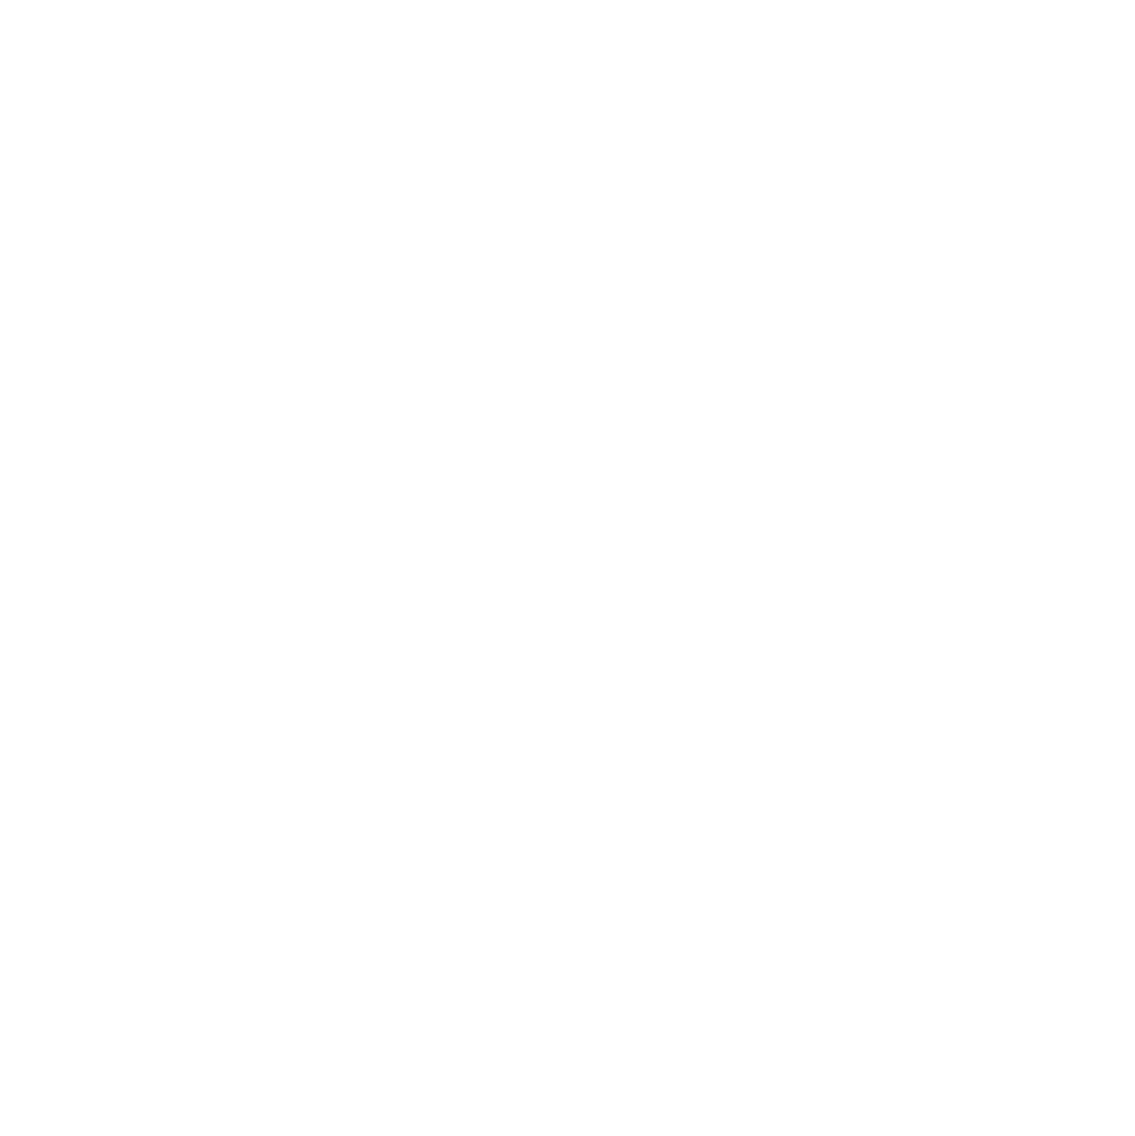 """A planet with lines on its surface that indicate clouds. It says """"Records"""" on it."""